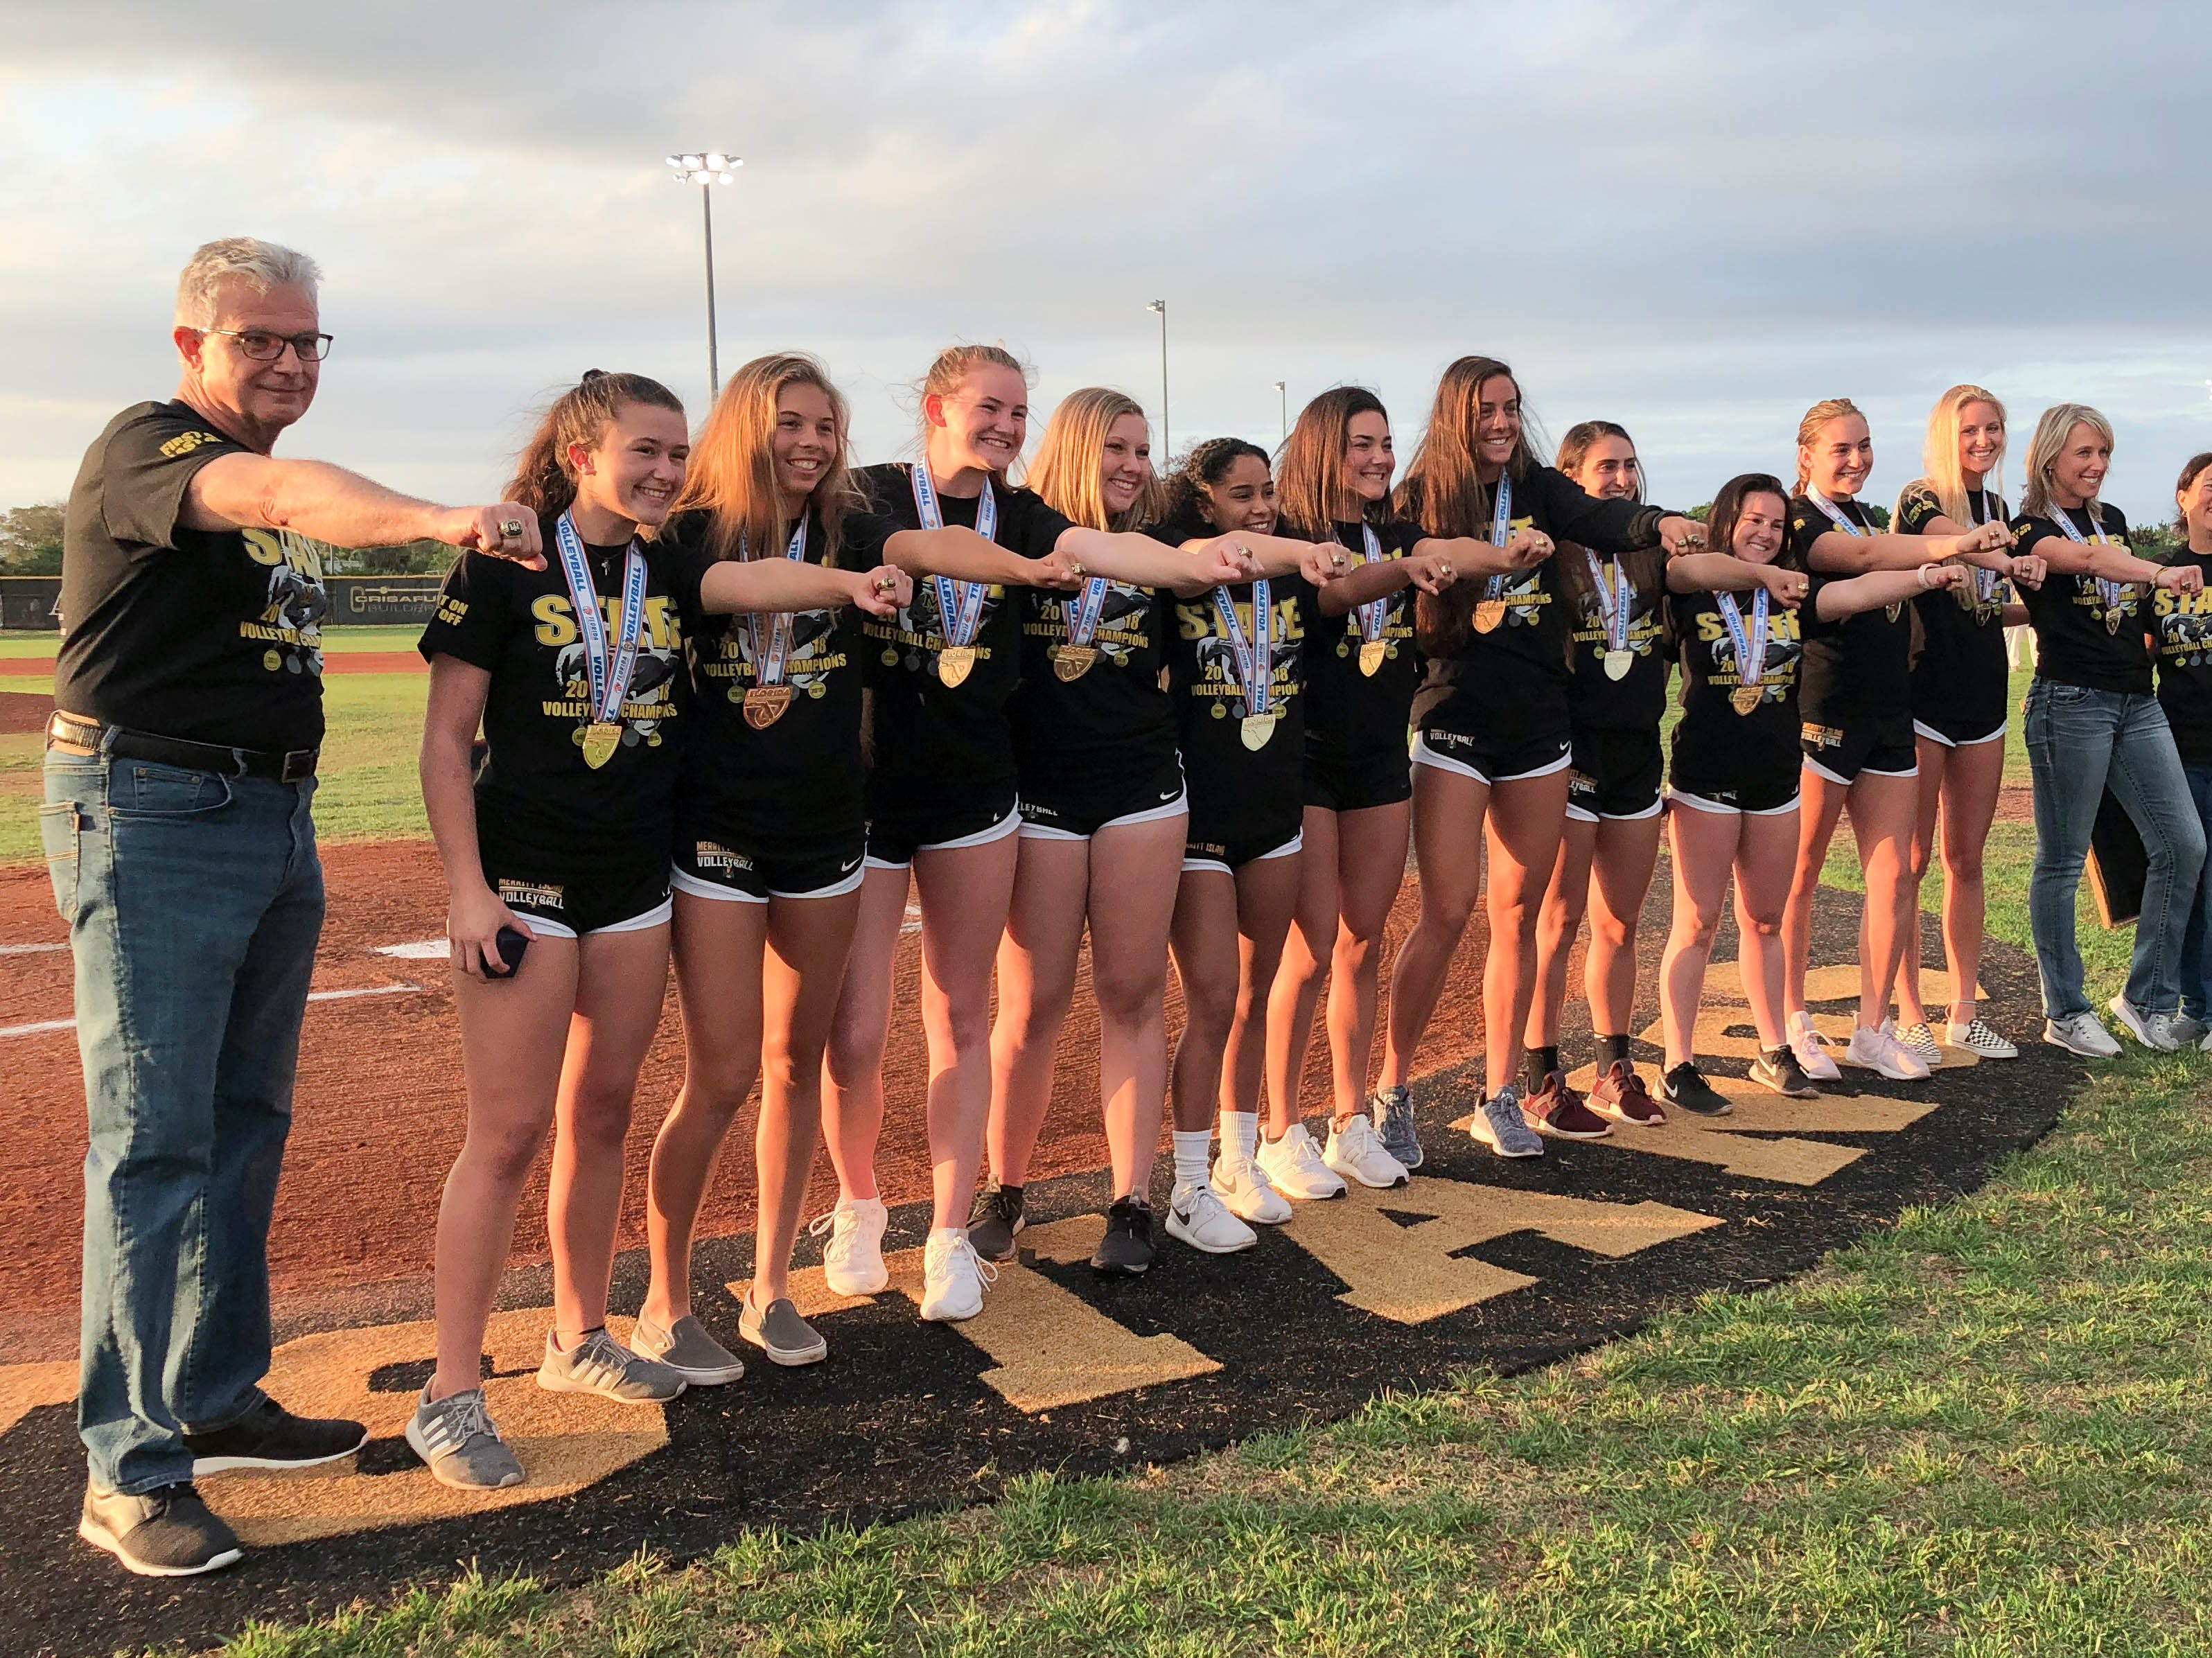 Merritt Island volleyball players, coaches and. Trainers show off their State Championship rings they received before Tuesday's baseball game against Eau Gallie.